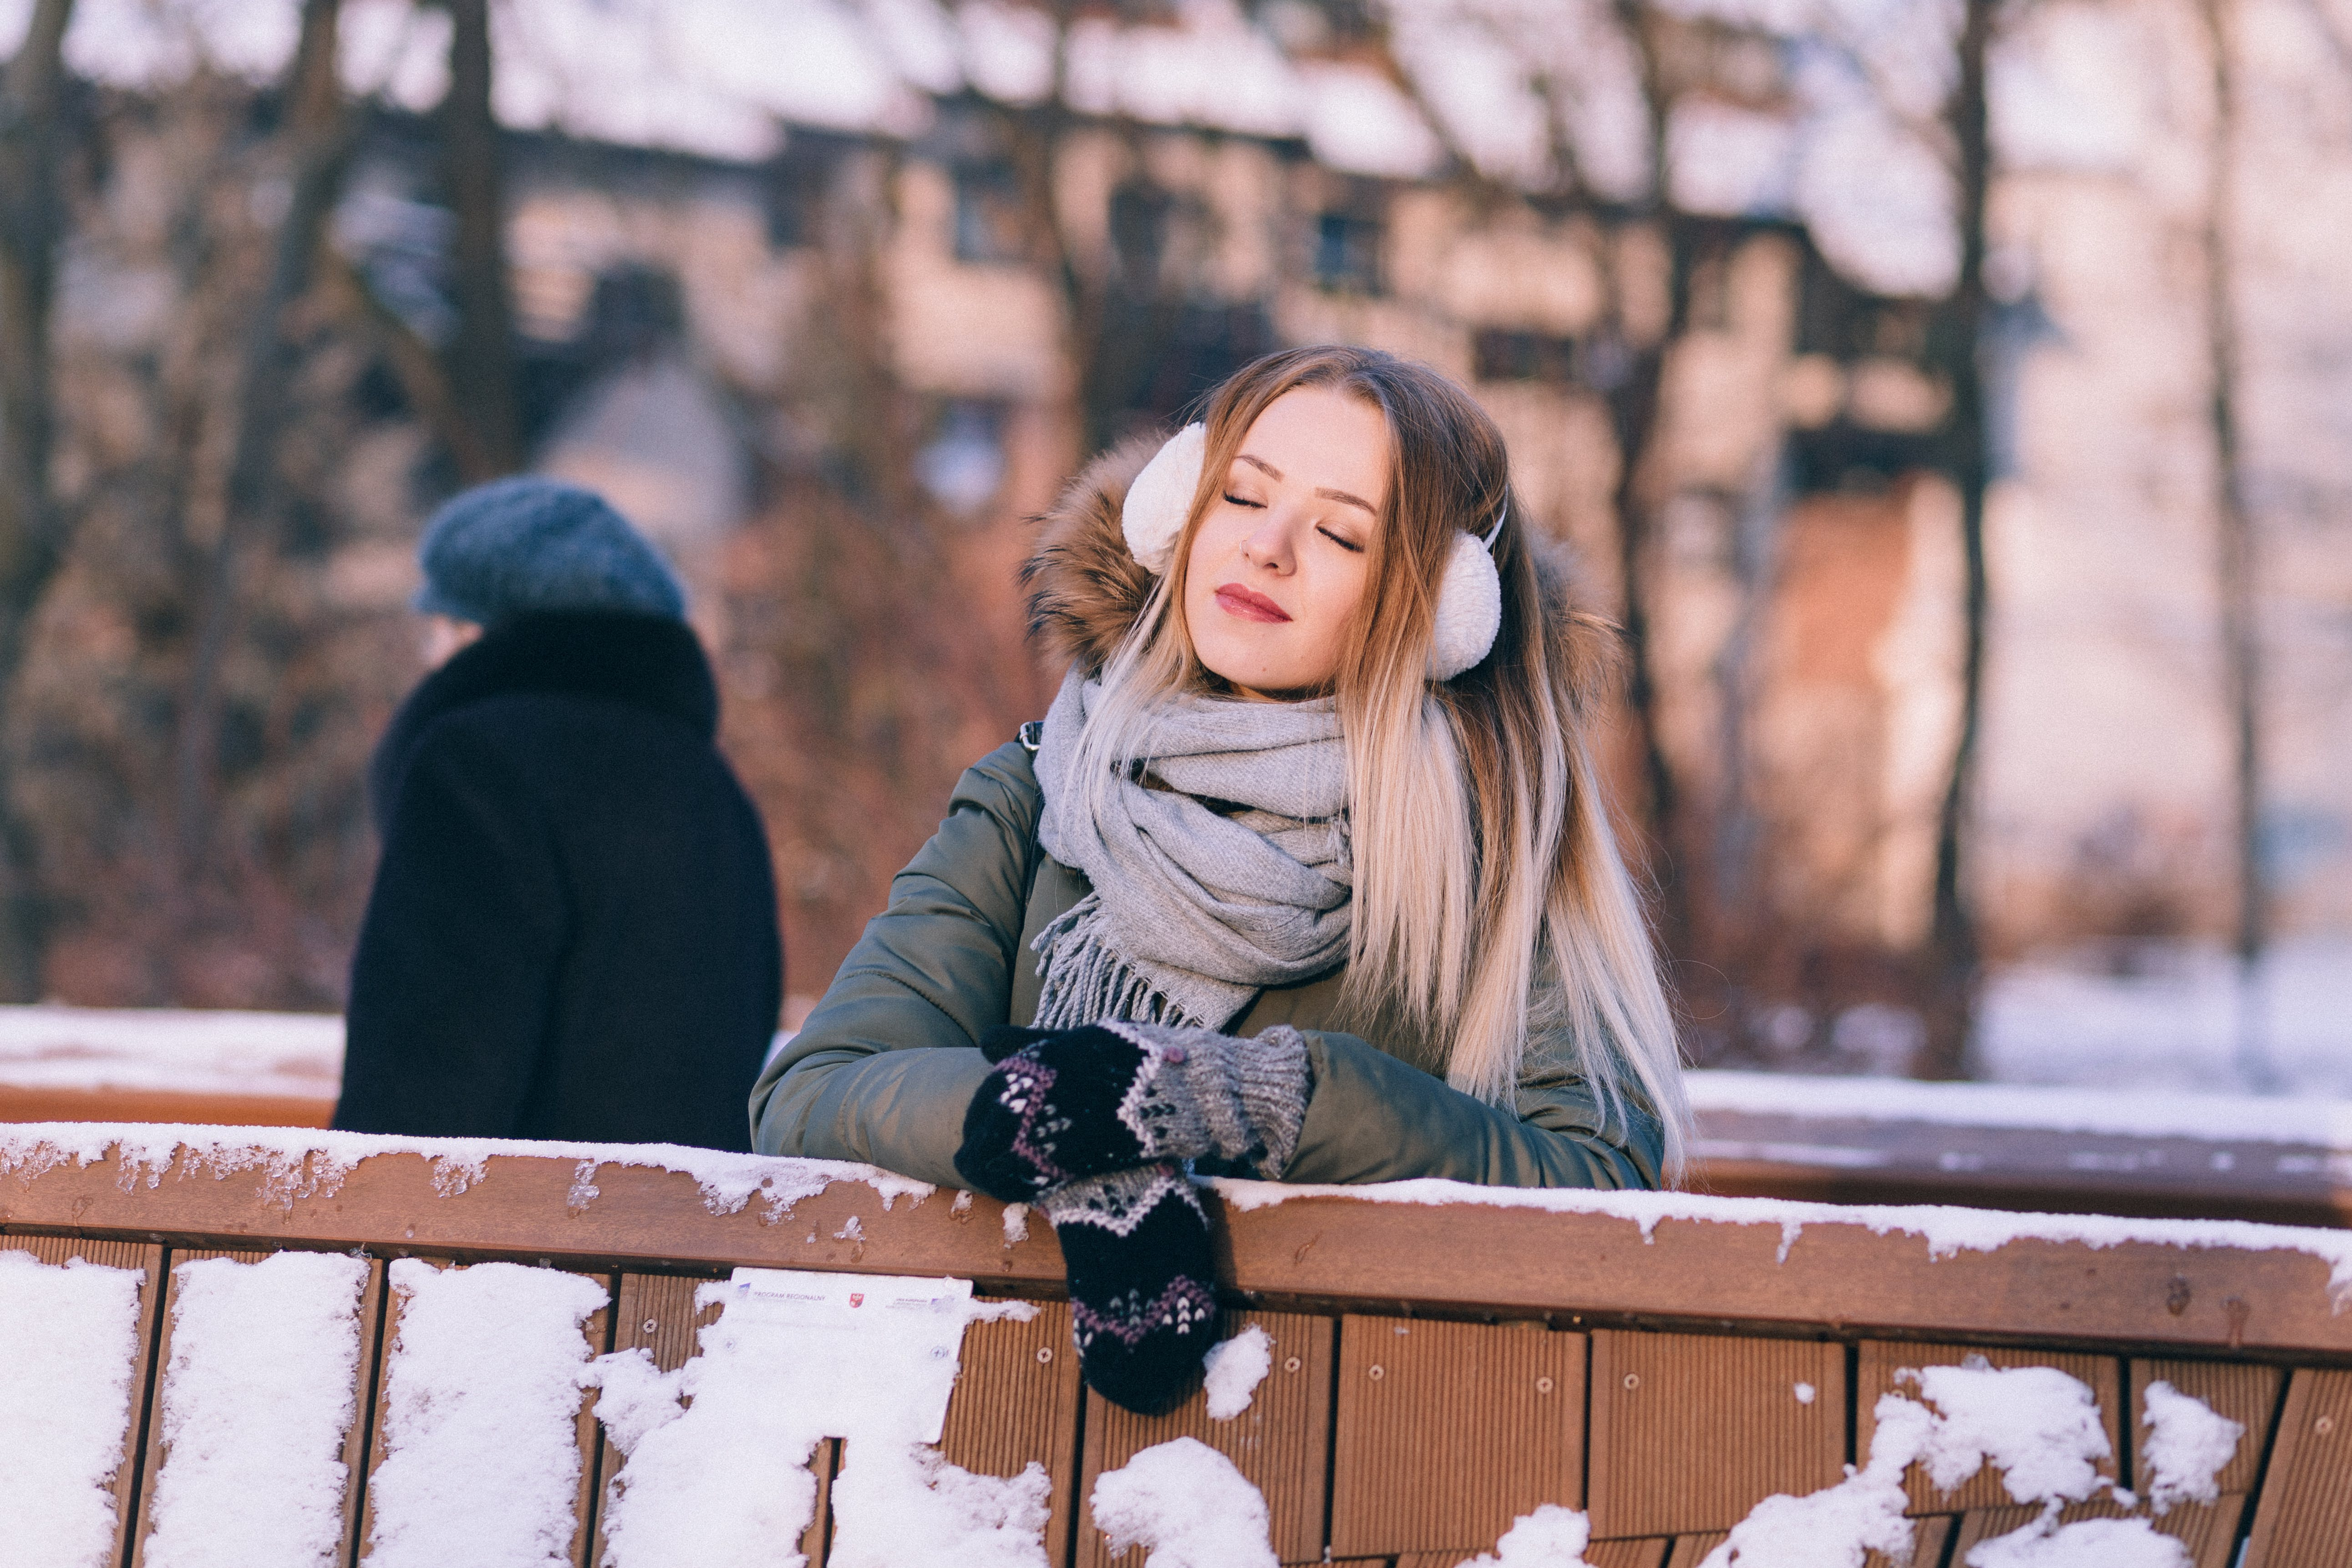 Young Woman Sitting on Bench in Winter